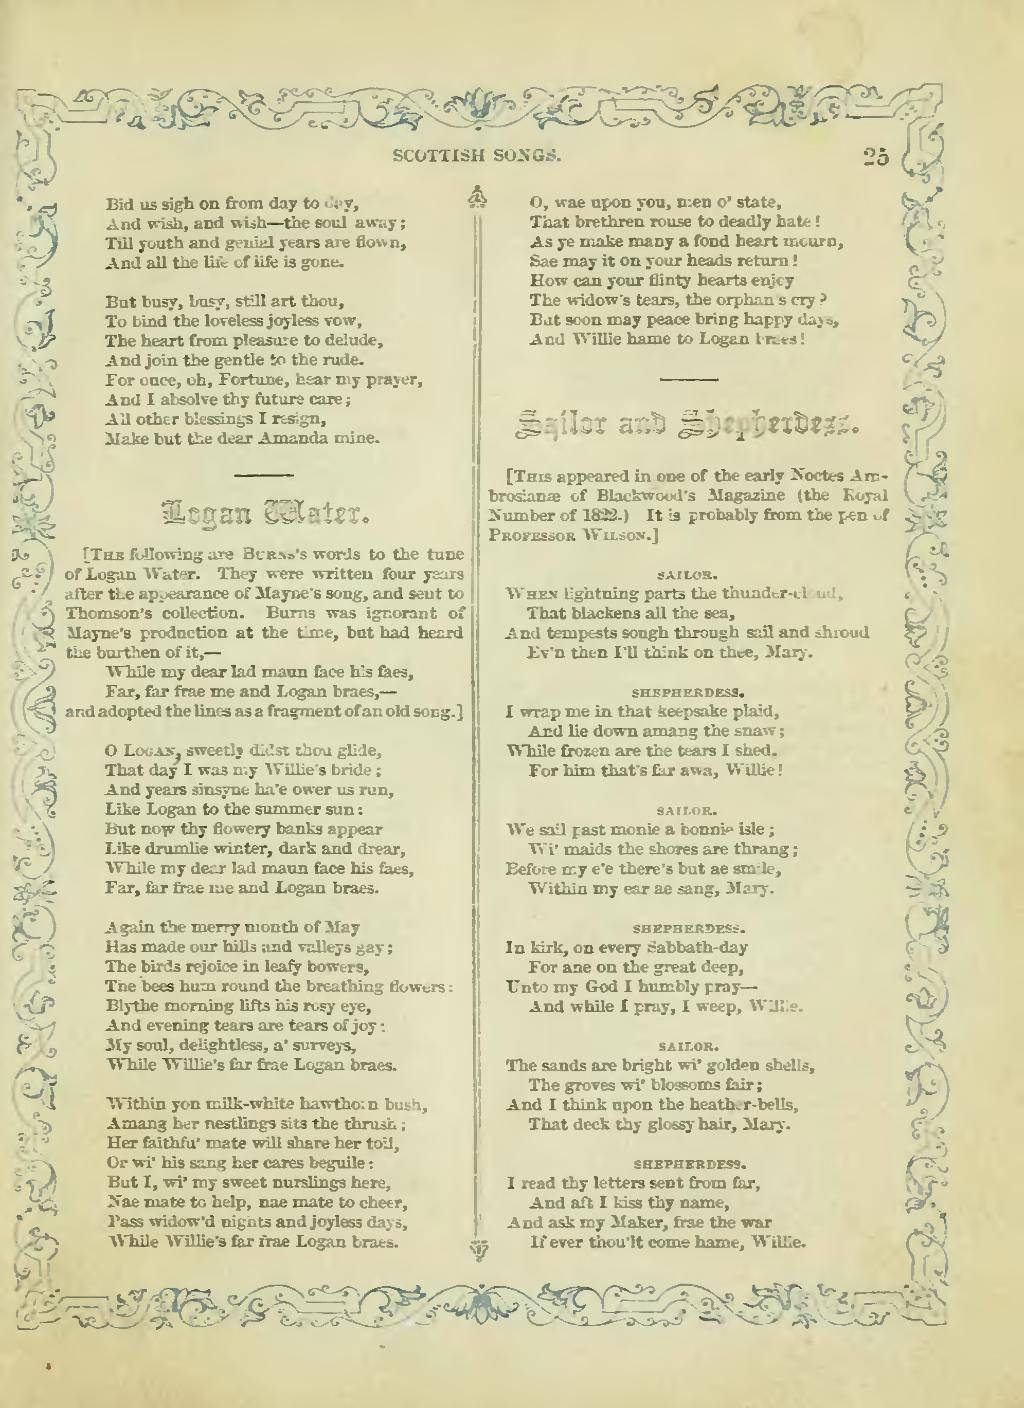 e24f7e8bb39 Page:The Book of Scottish Song.djvu/43 - Wikisource, the free online ...